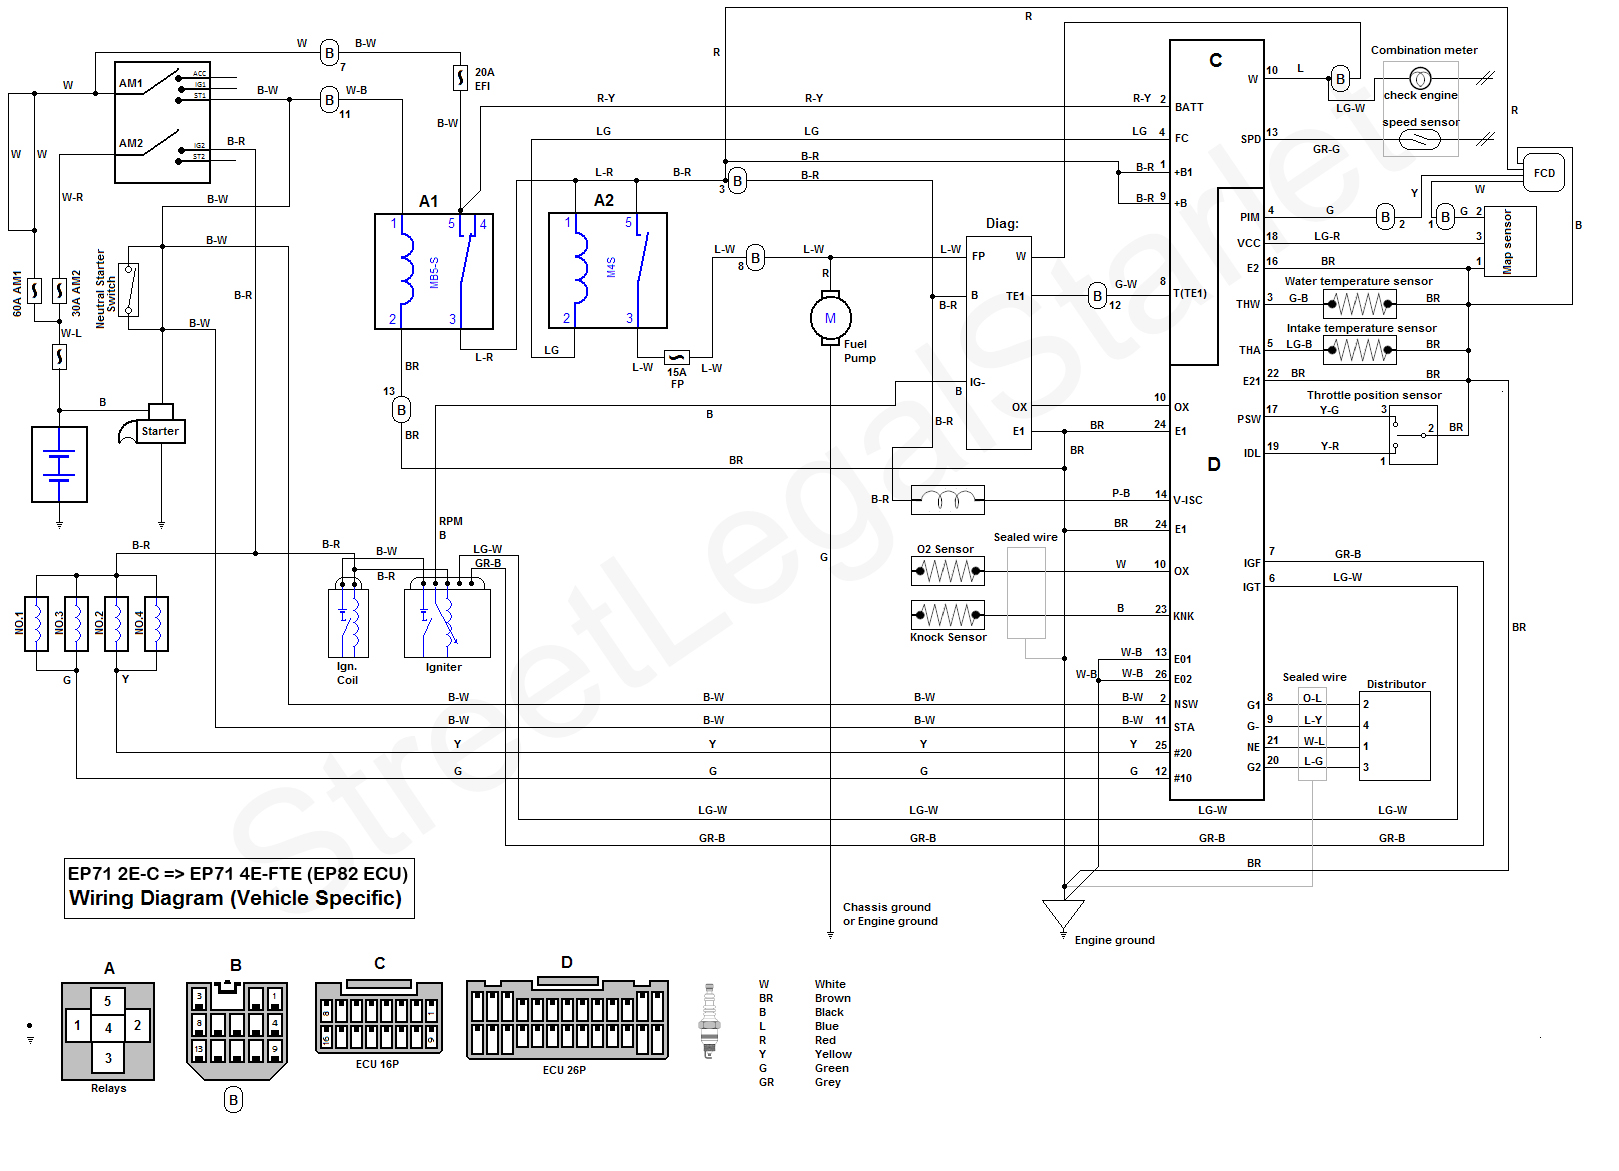 SLS EP71 2E C 4E FTE (EP82 ECU) toyota starlet wiring diagram efcaviation com toyota highlander ecu wiring diagram at reclaimingppi.co